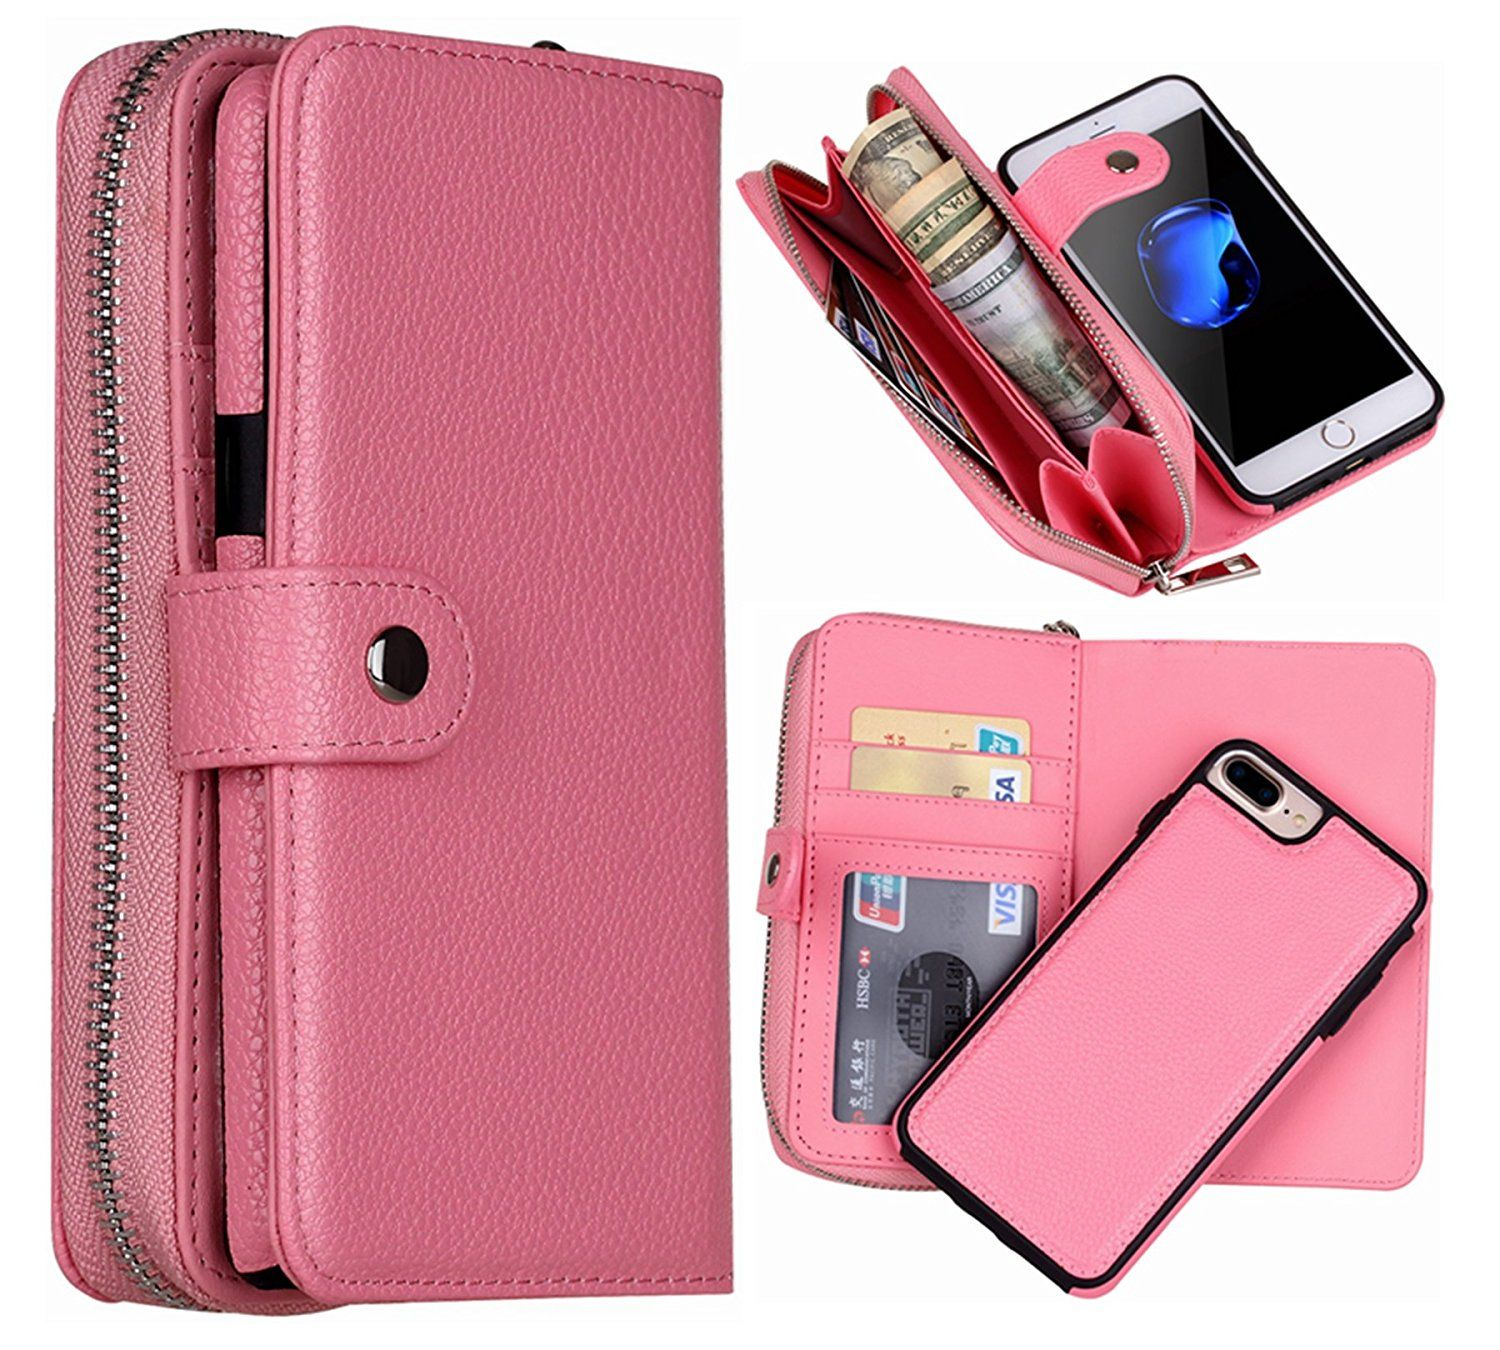 purse iphone 7 plus case